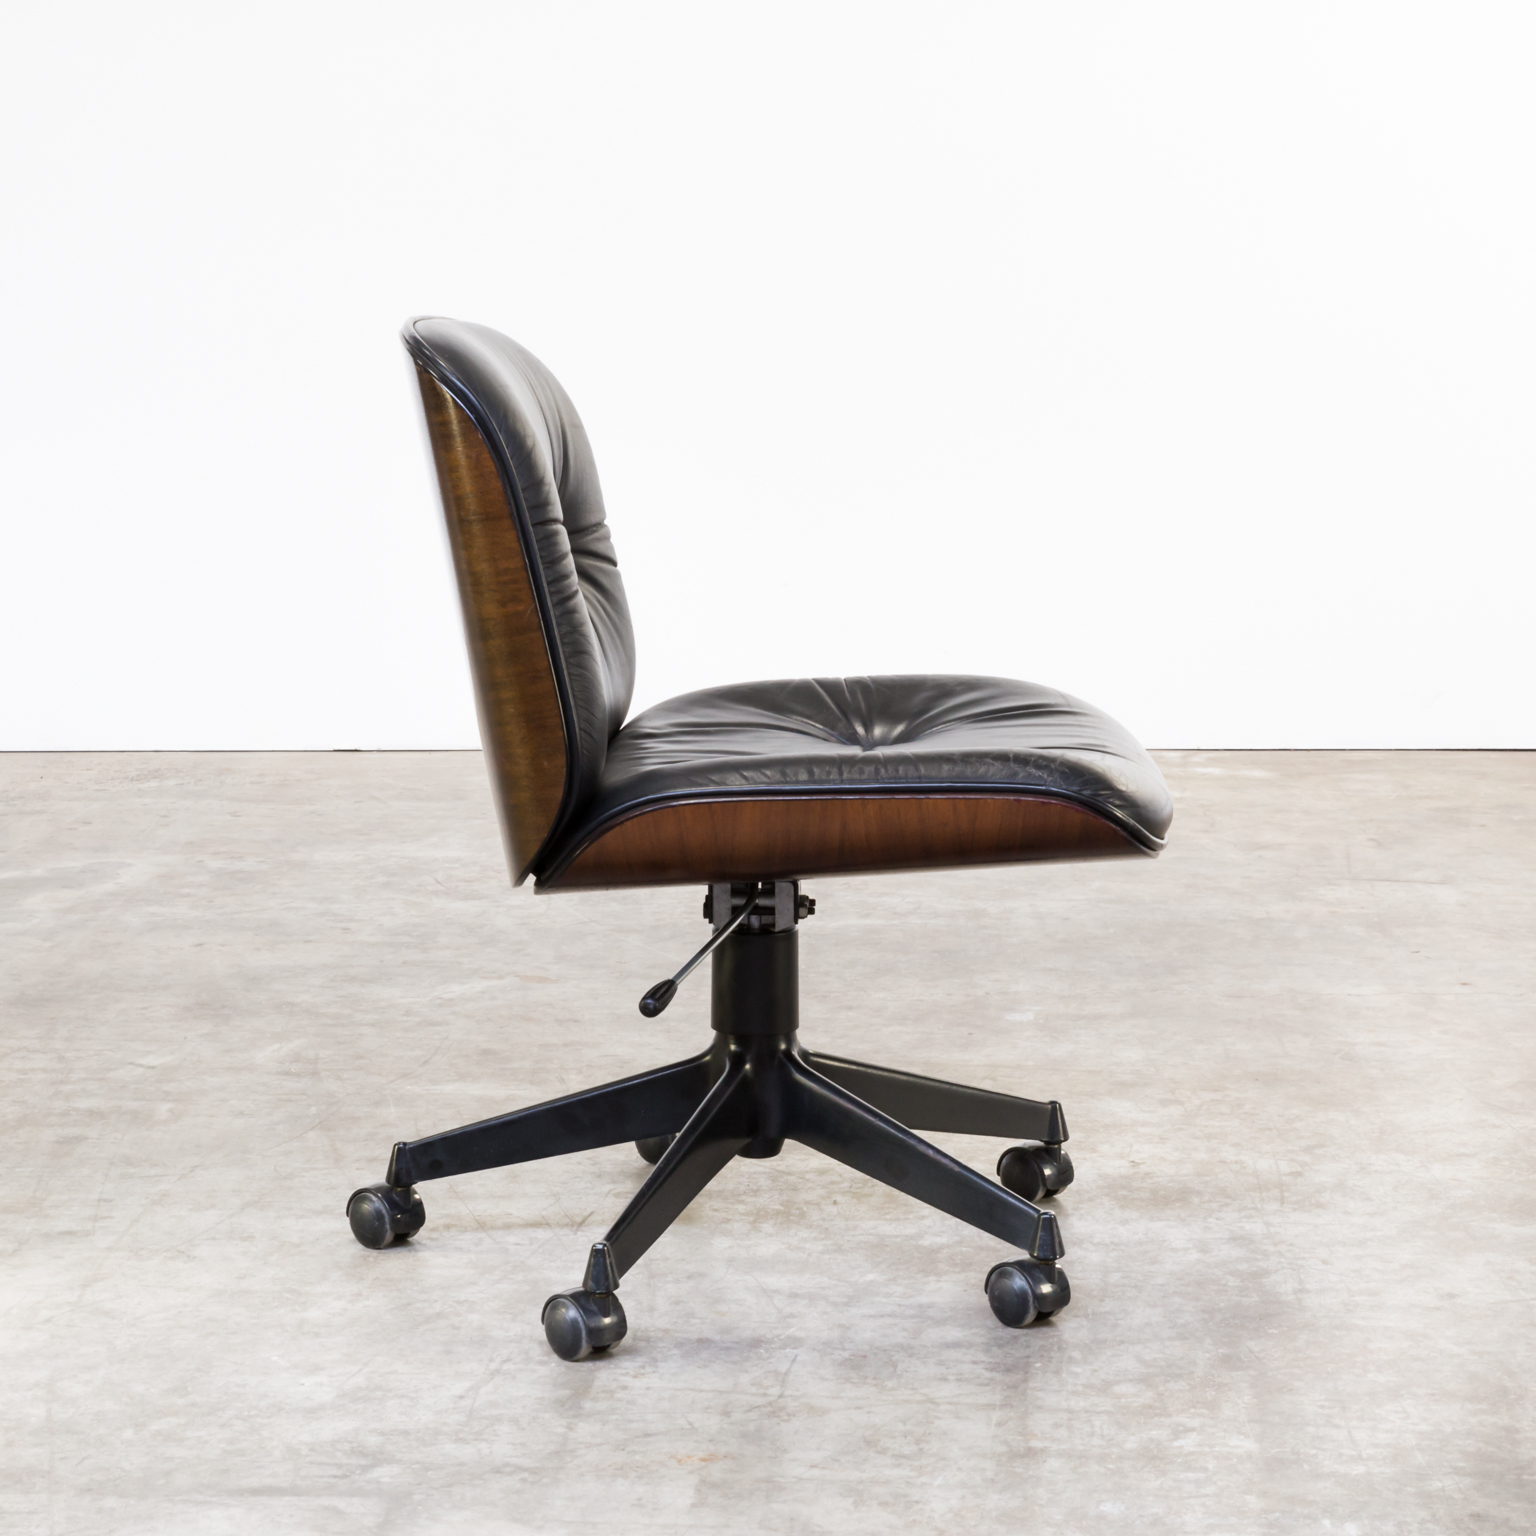 60s ico parisi desk chair for mim design barbmama for Designer chairs from the 60s